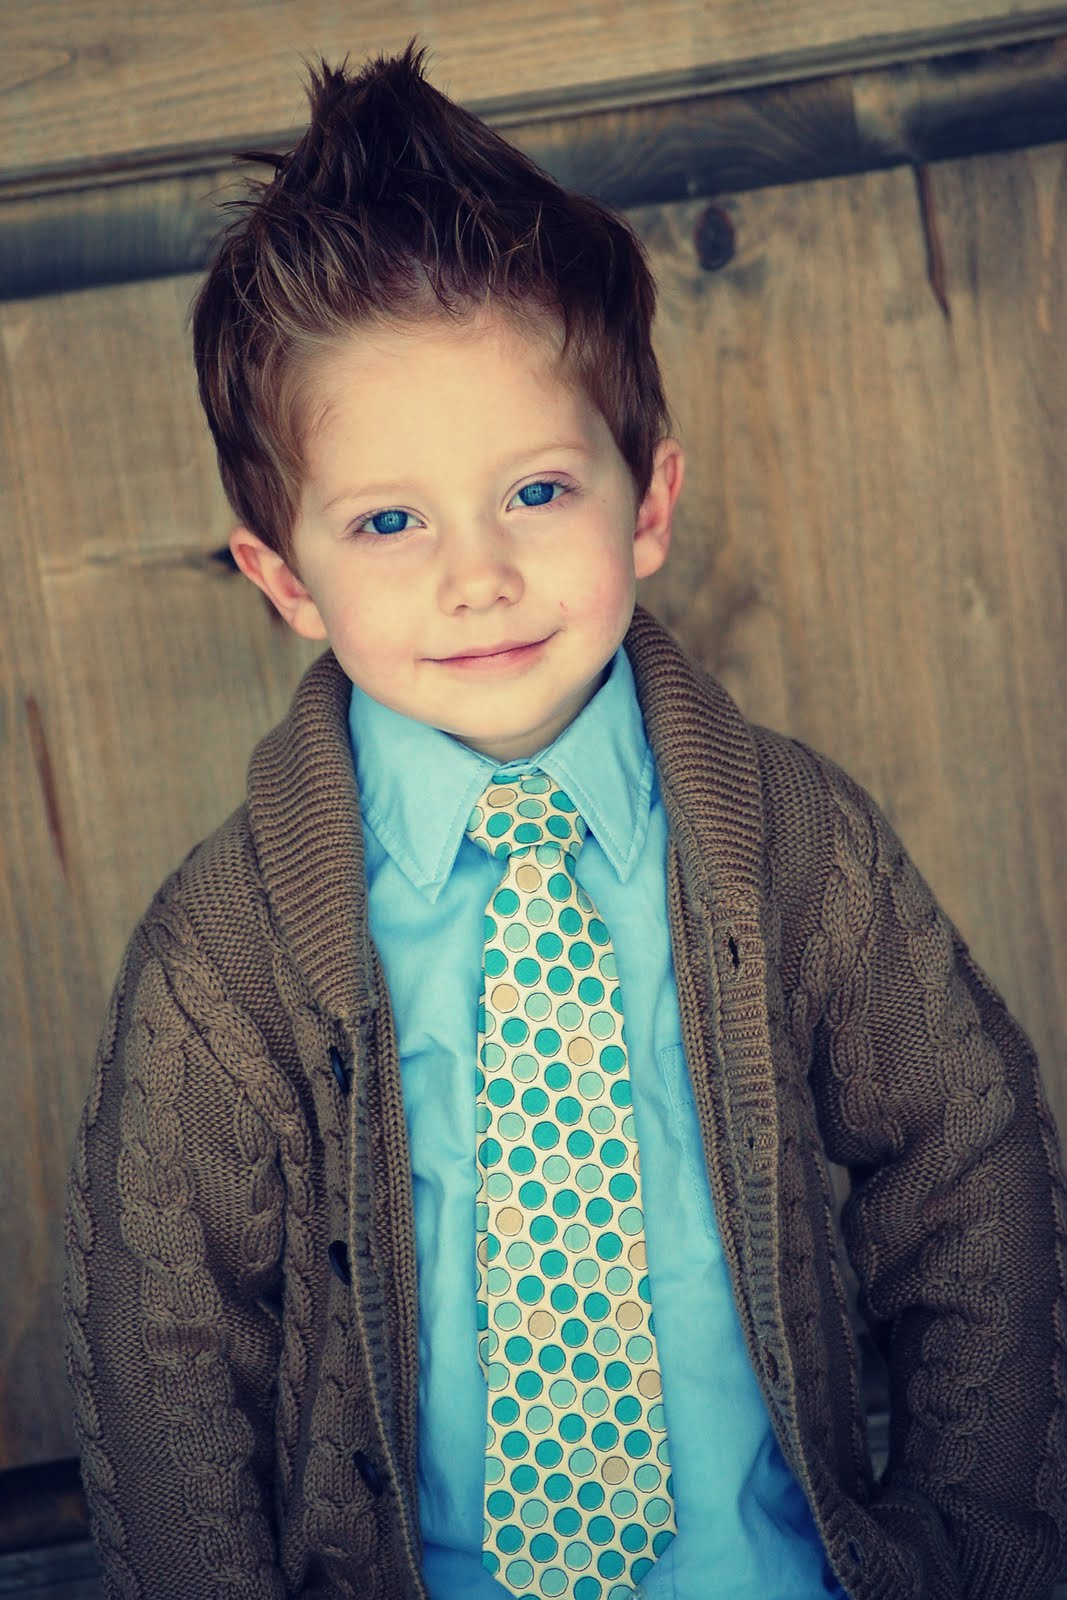 LITTLE BOY MODELING